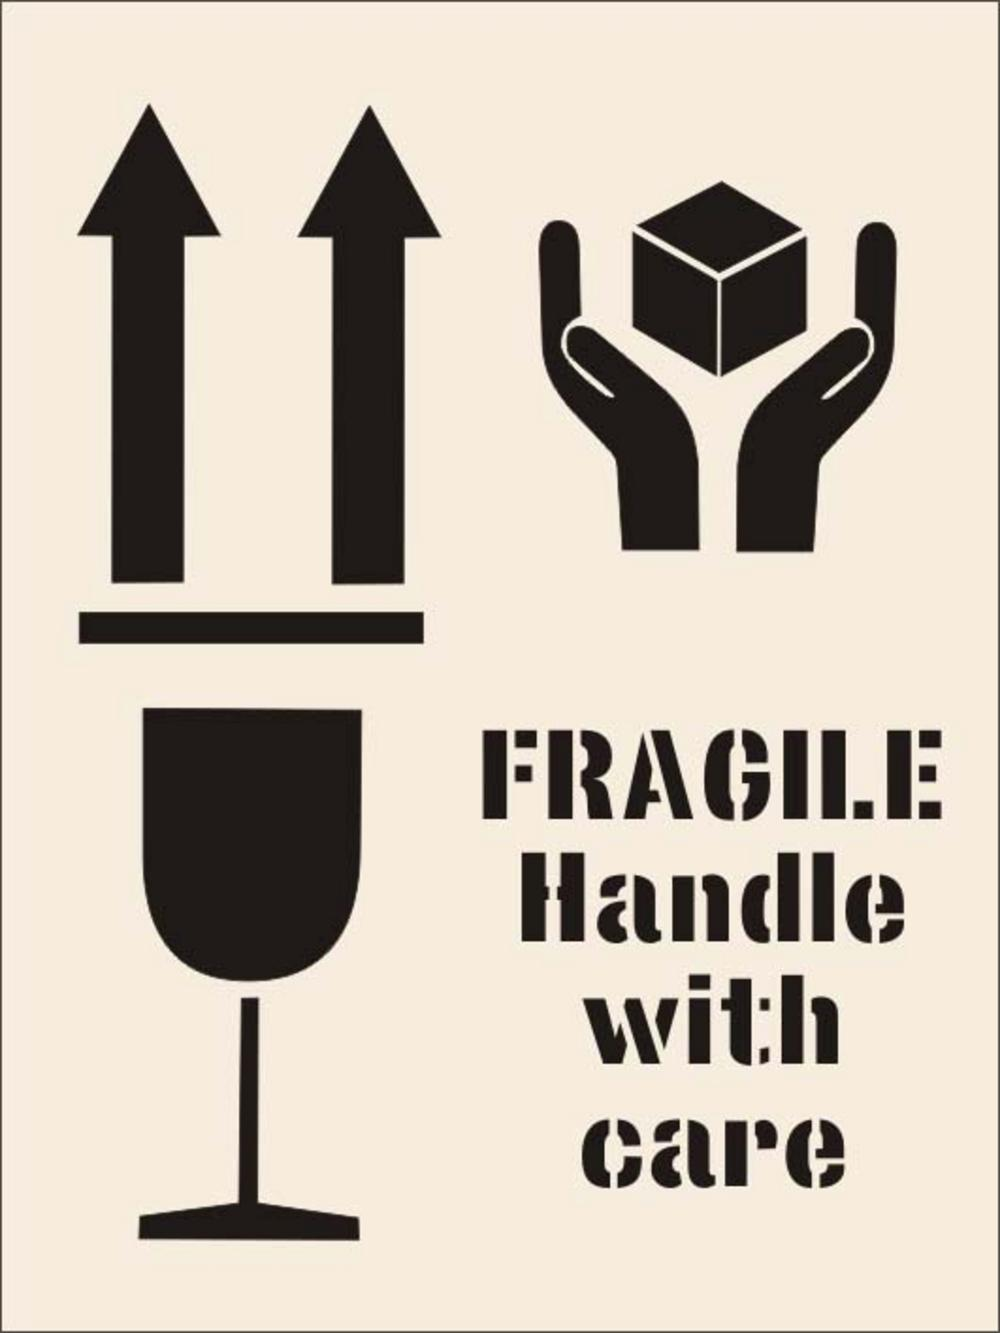 Symbol clipart handle with care #14